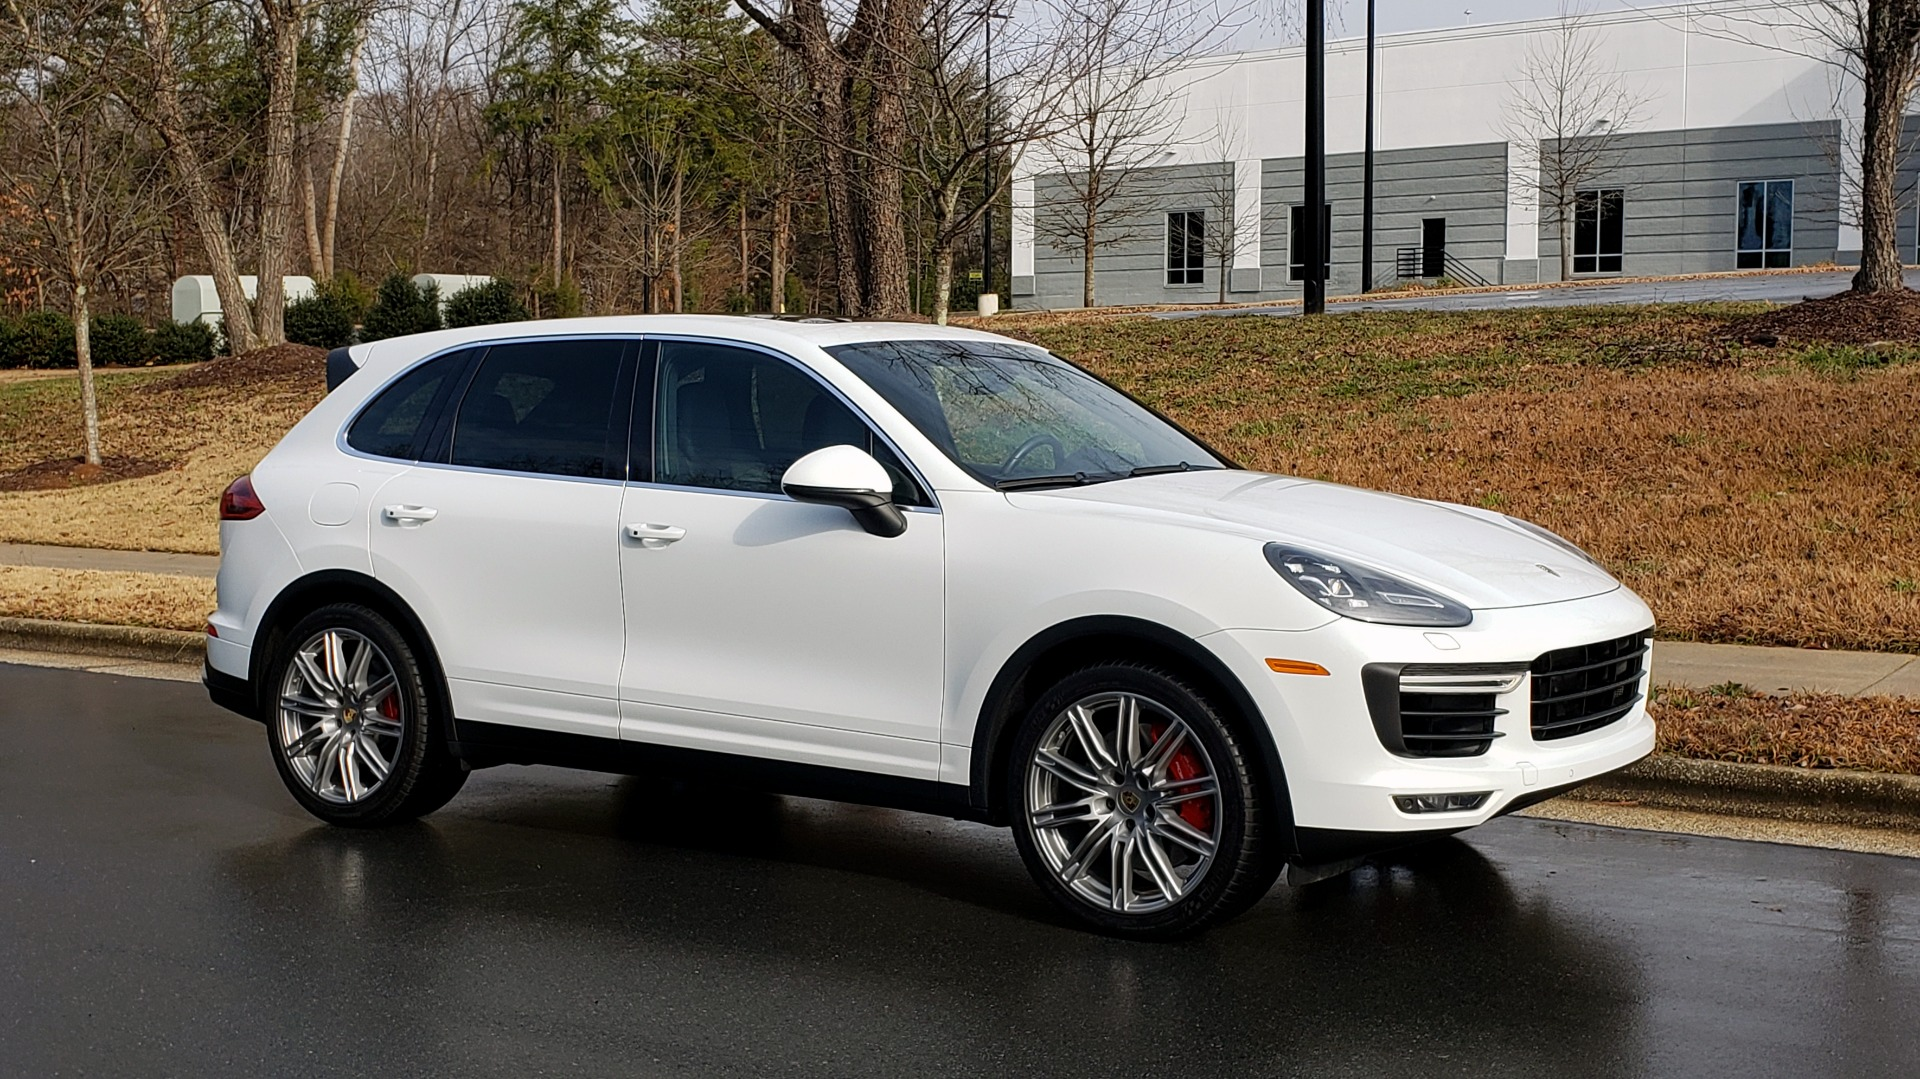 Used 2015 Porsche CAYENNE TURBO V8 / PREMIUM / NAV / SUNROOF / PARK ASSIST / LCA / REARVIEW for sale $47,995 at Formula Imports in Charlotte NC 28227 7